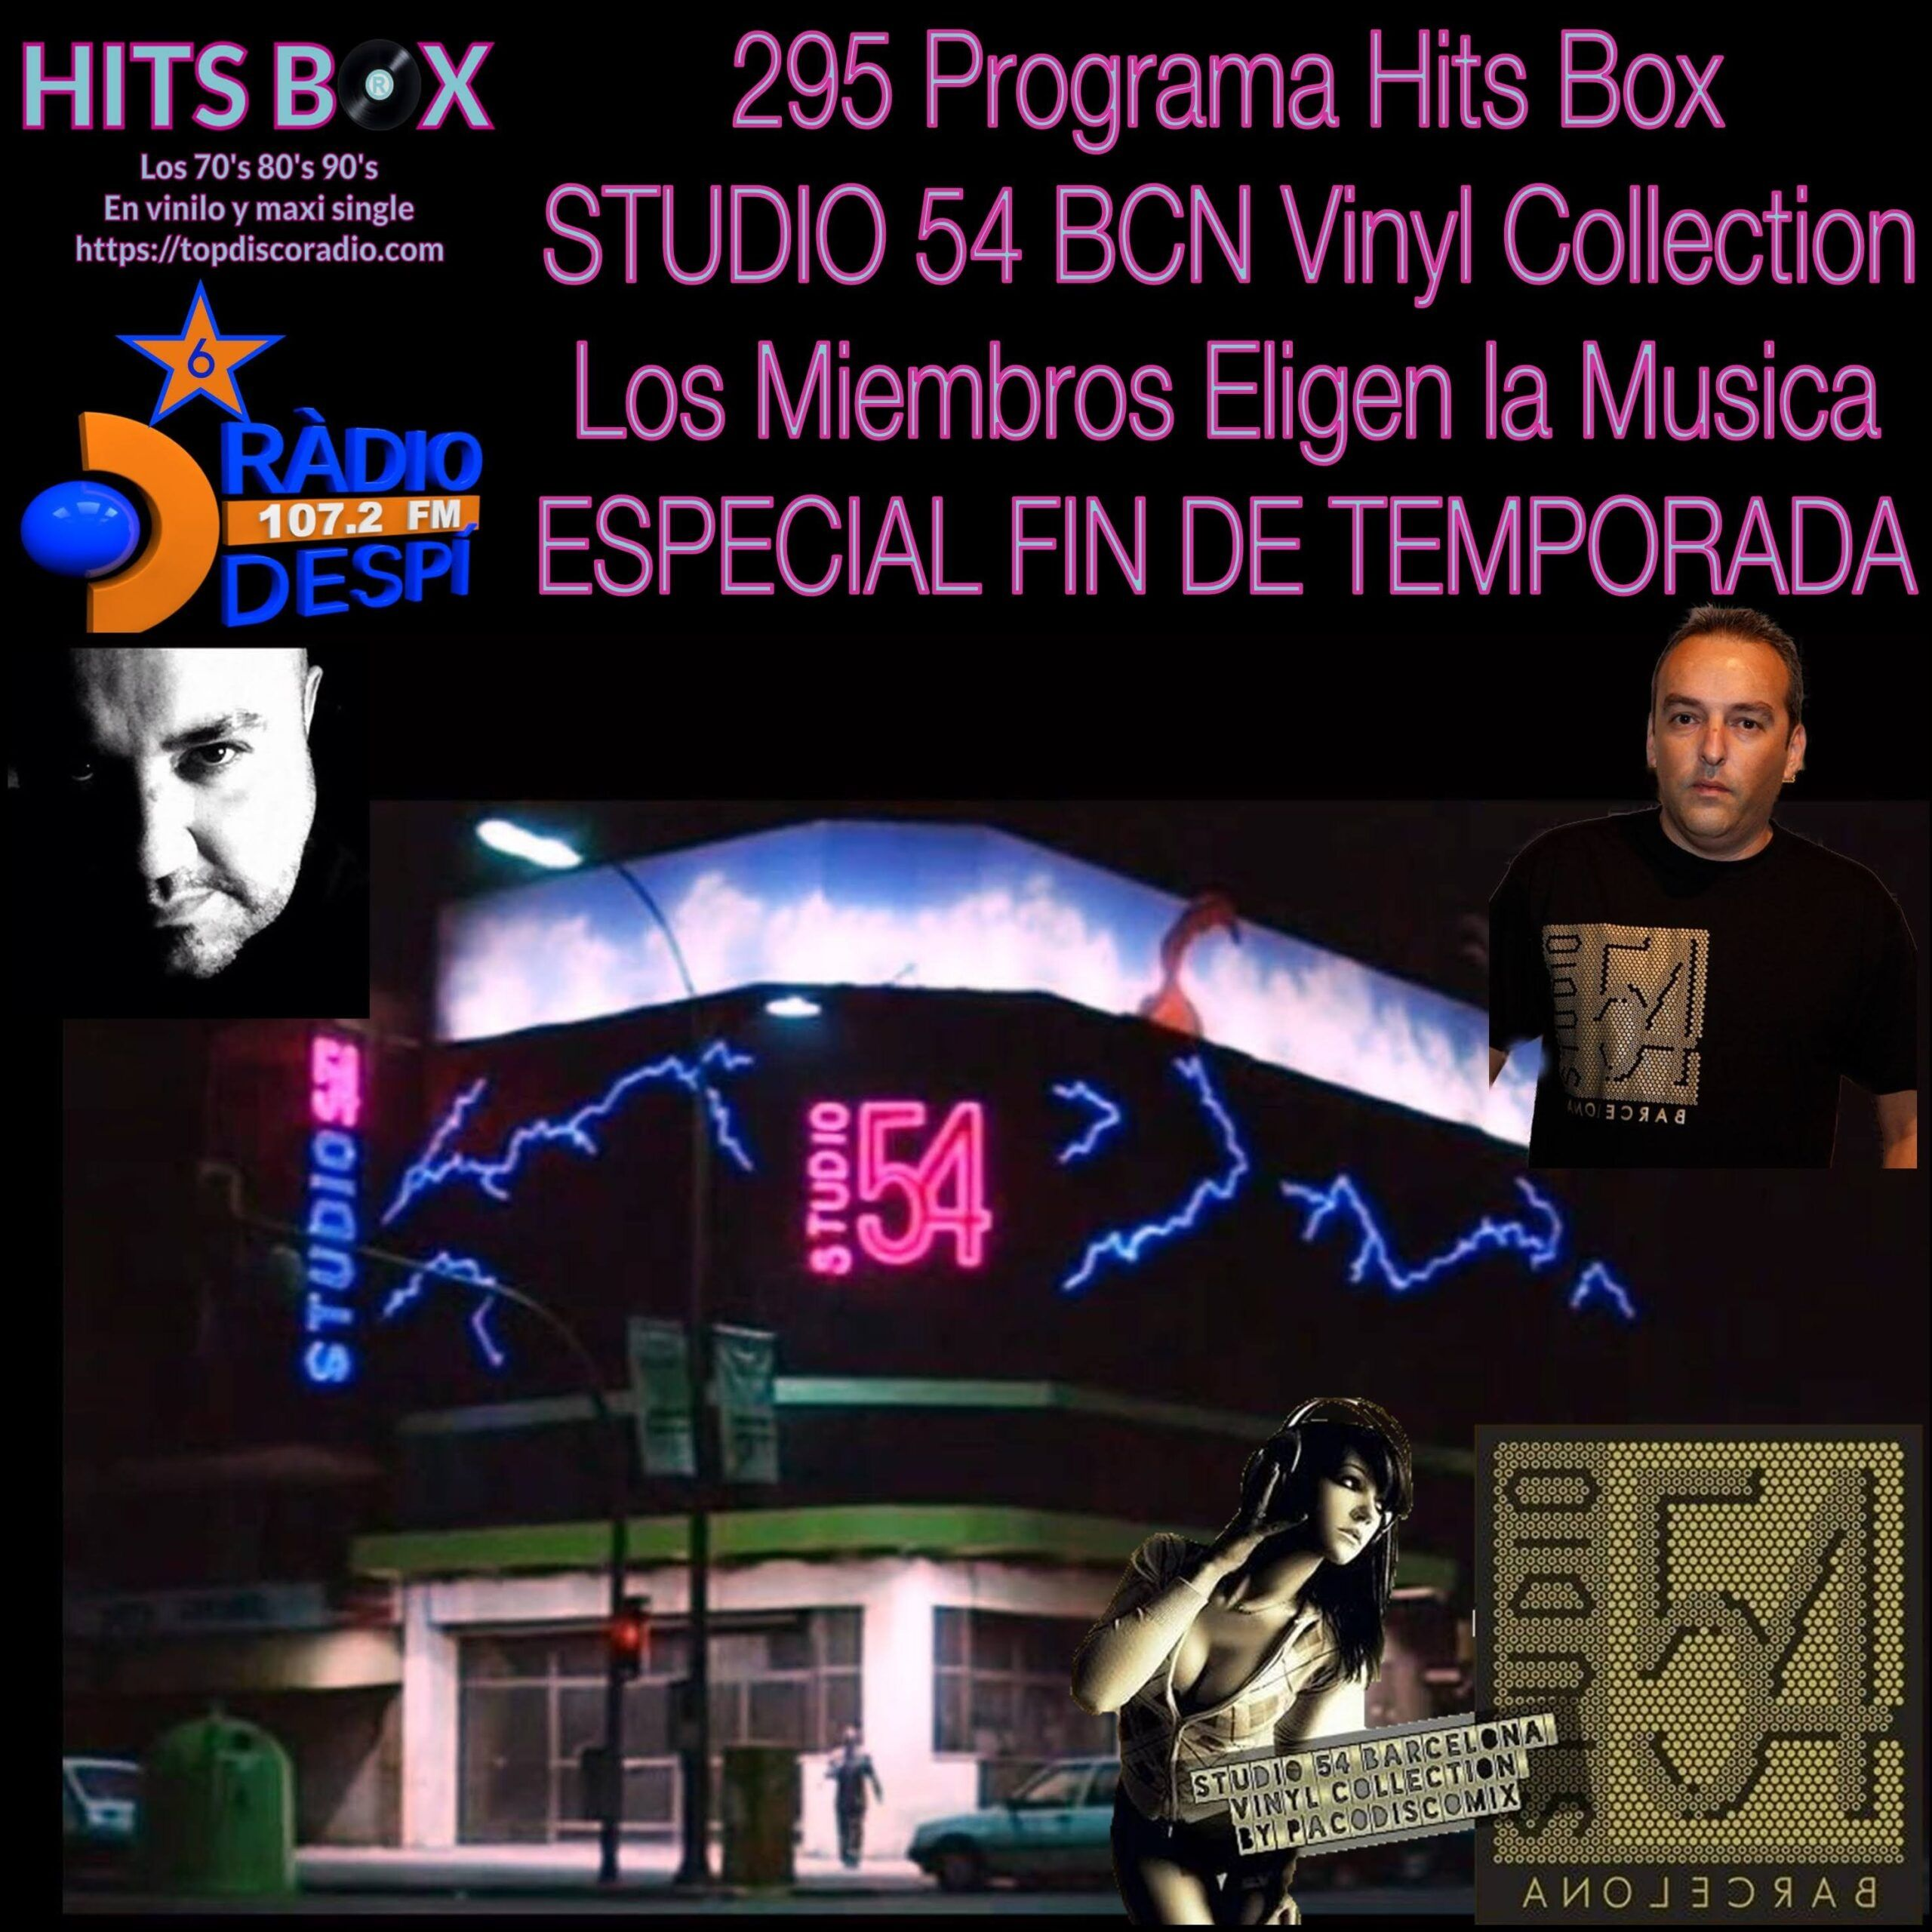 295 Programa Hits Box - Studio 54 Barcelona Vinyl Collection - Fin Temporada Radio Despi - Topdisco Radio - Dj. Xavi Tobaja